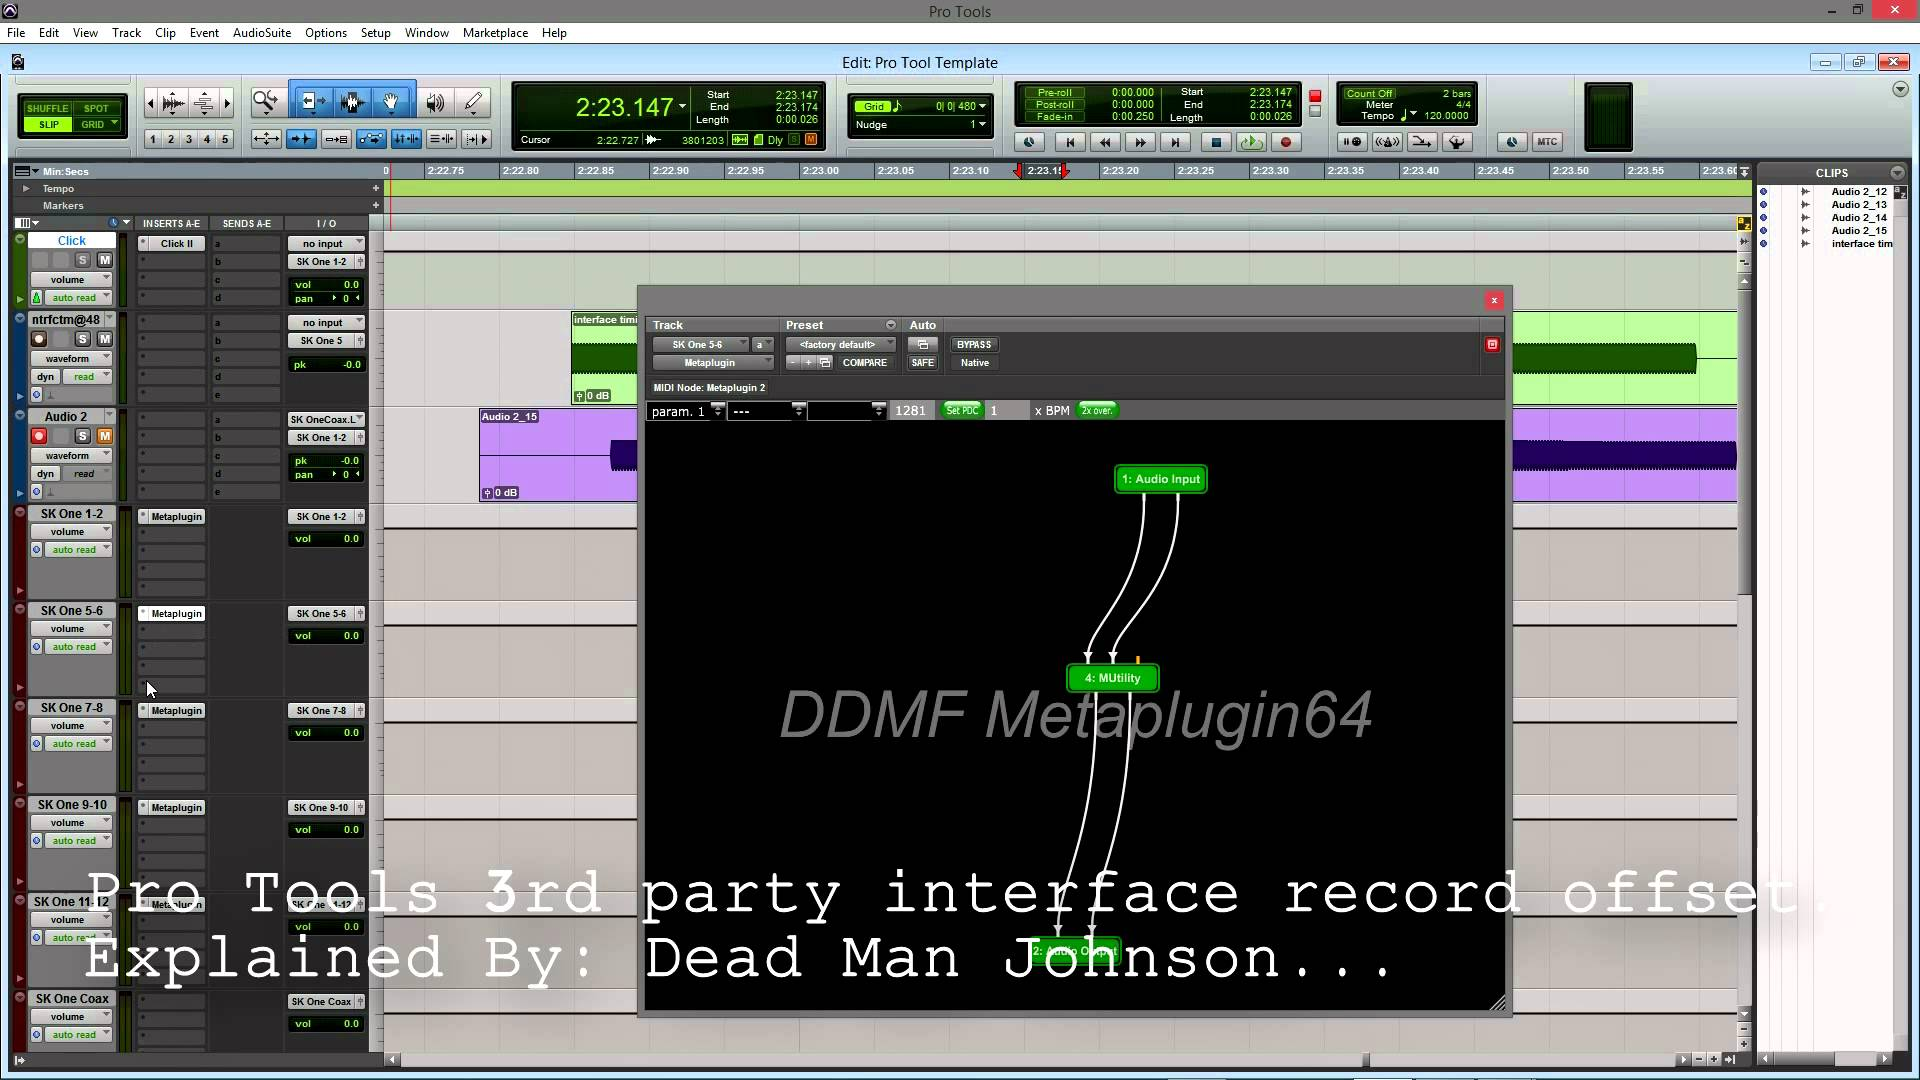 Pro Tools 3rd Party interface record offset. Explained by Dead Man Johnson…